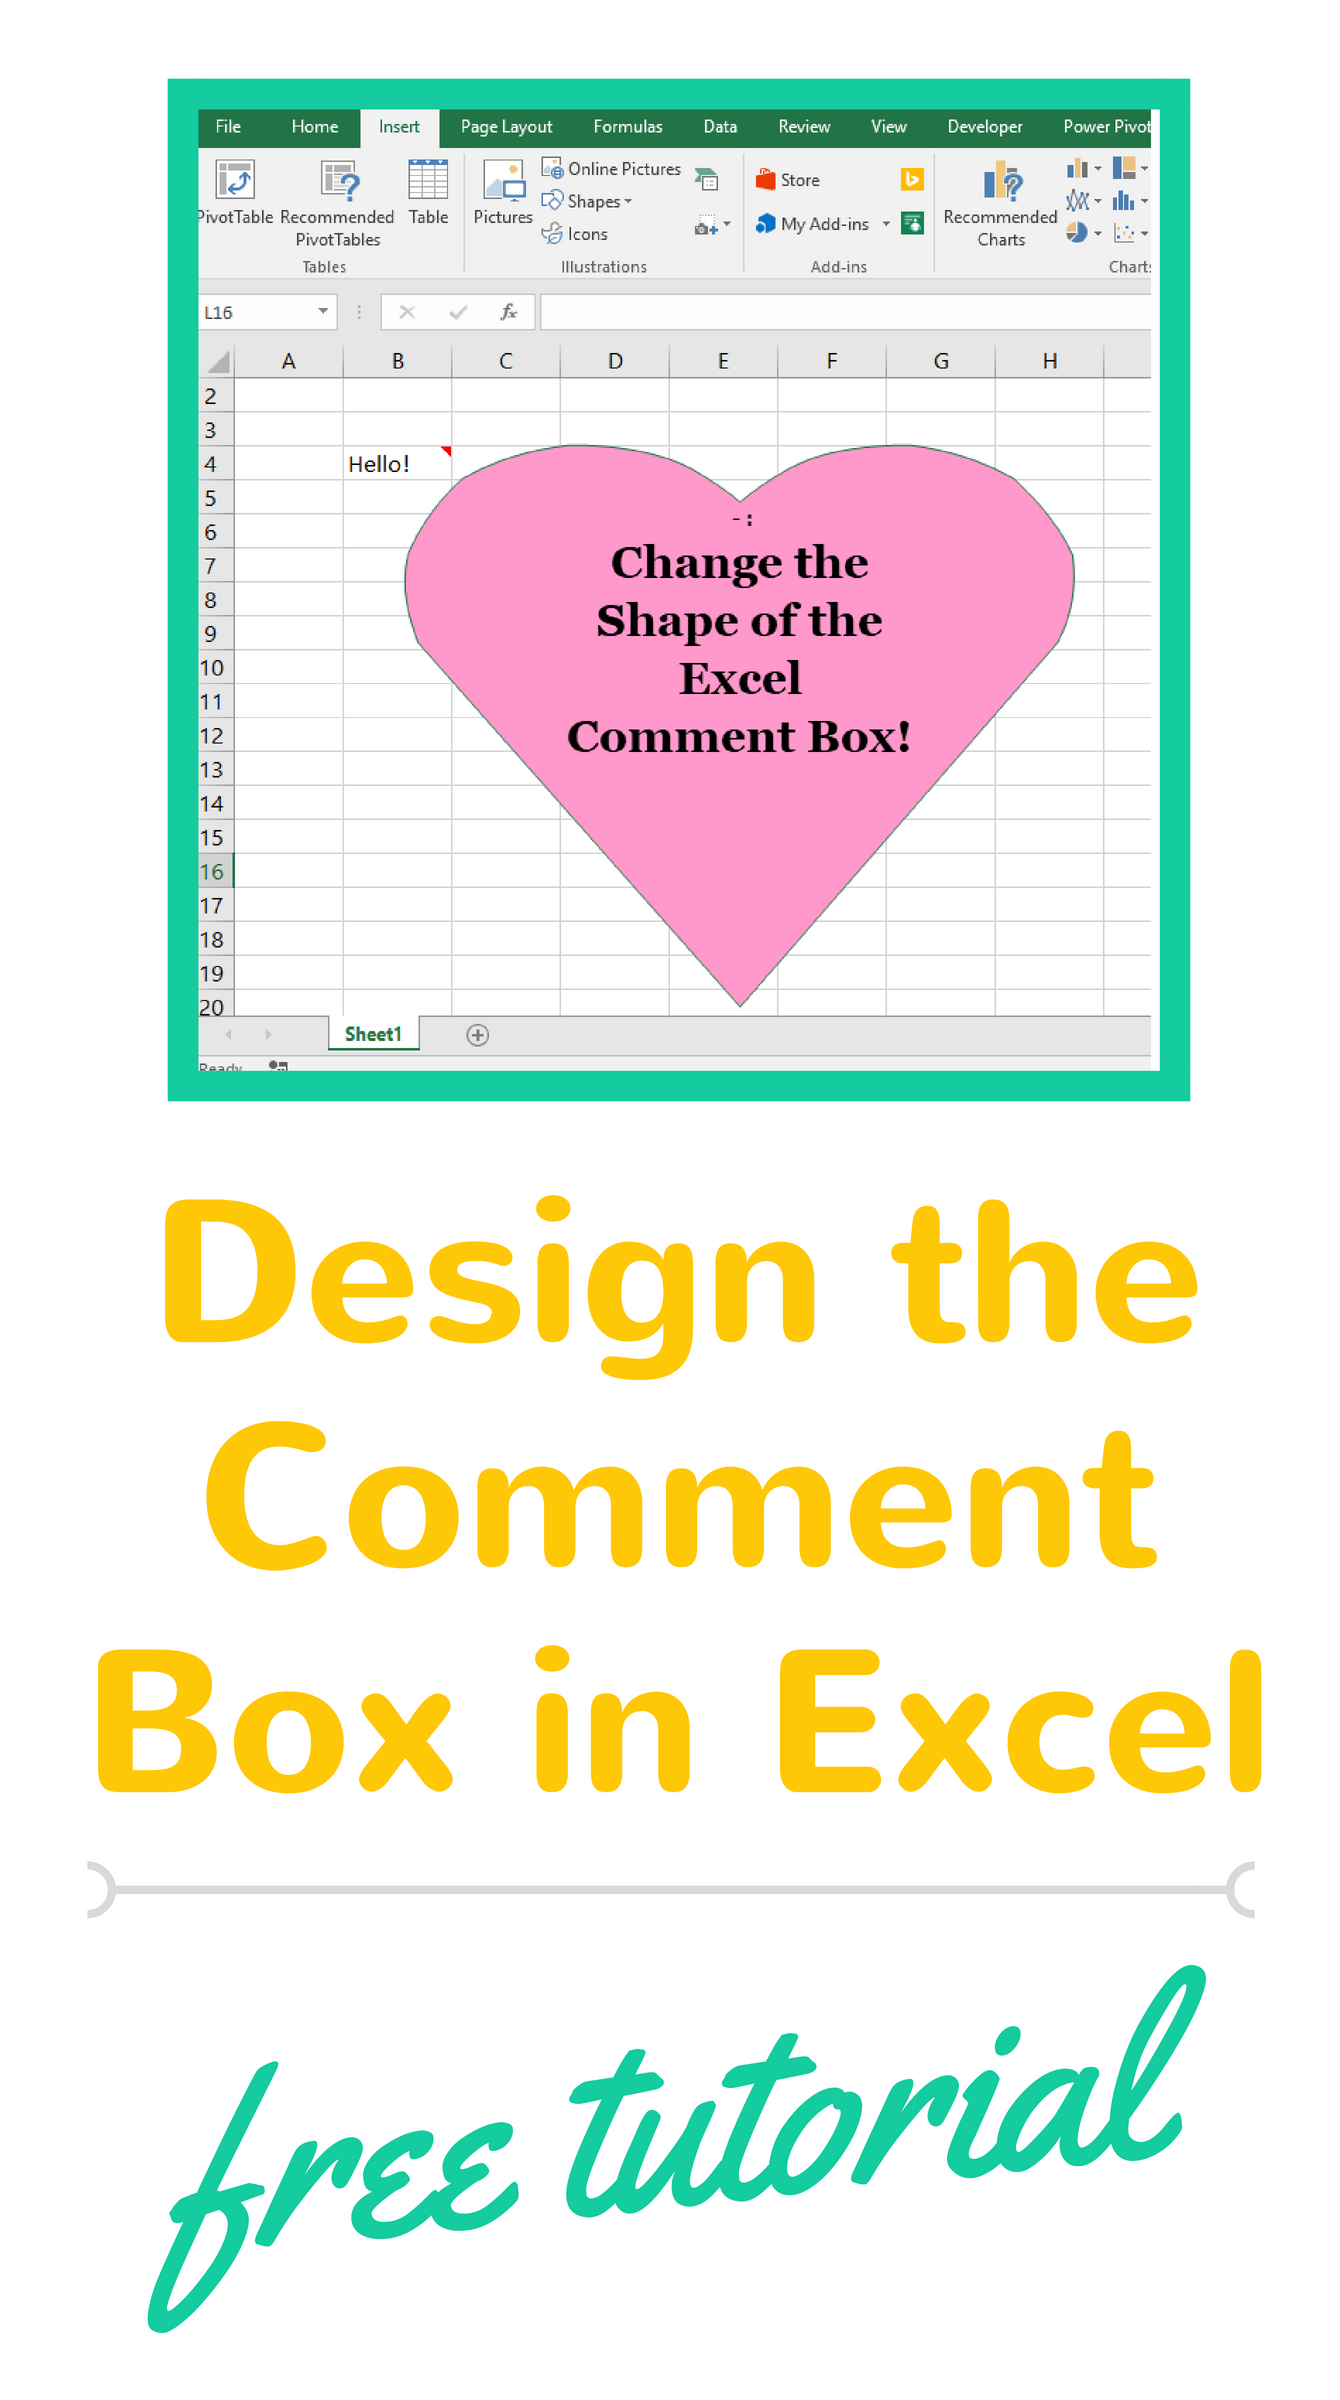 Excel Tutorial On How To Design The Comment Box In Excel